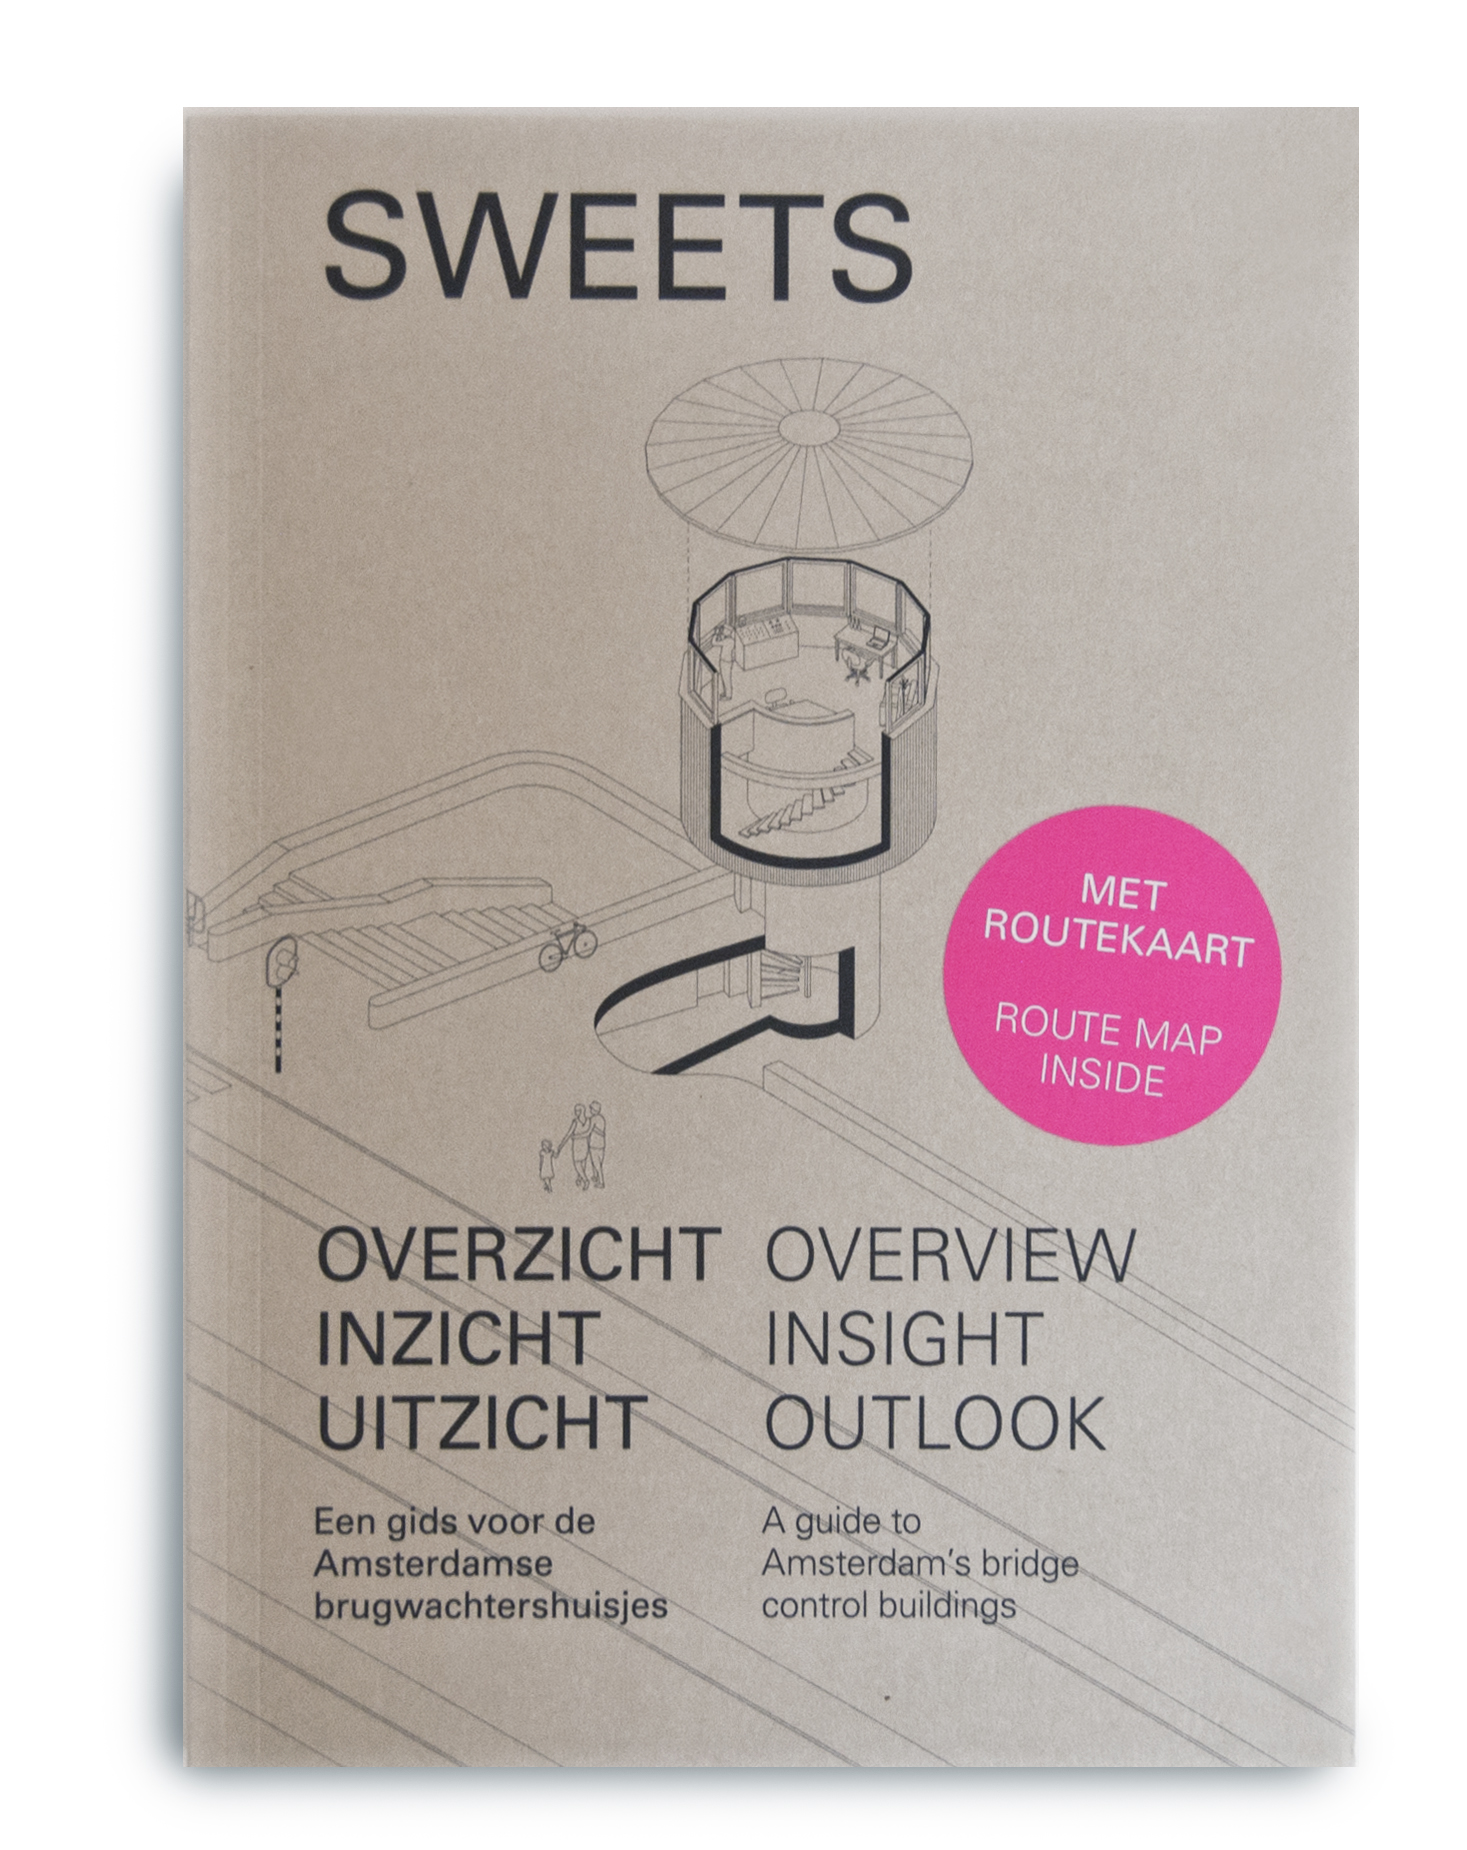 Cover page of Sweets Publication